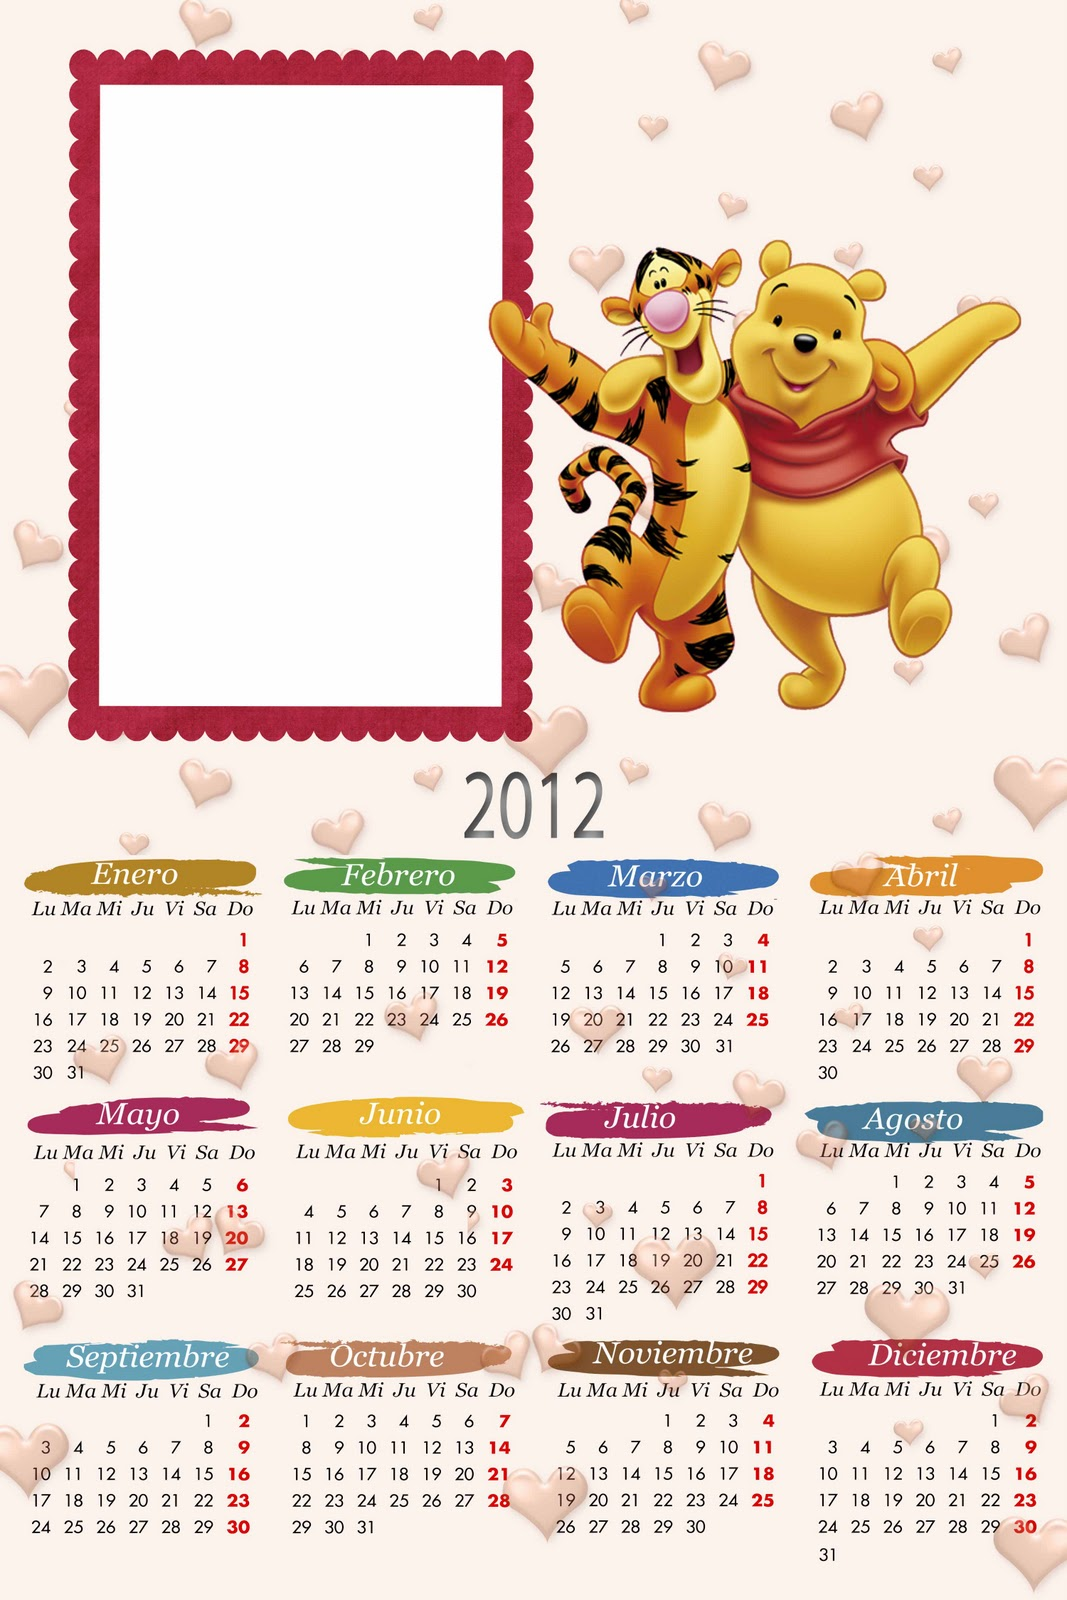 2012 Em PSD E PNG   Tem Calendario Do Mickey Minie Winnie The Pooh